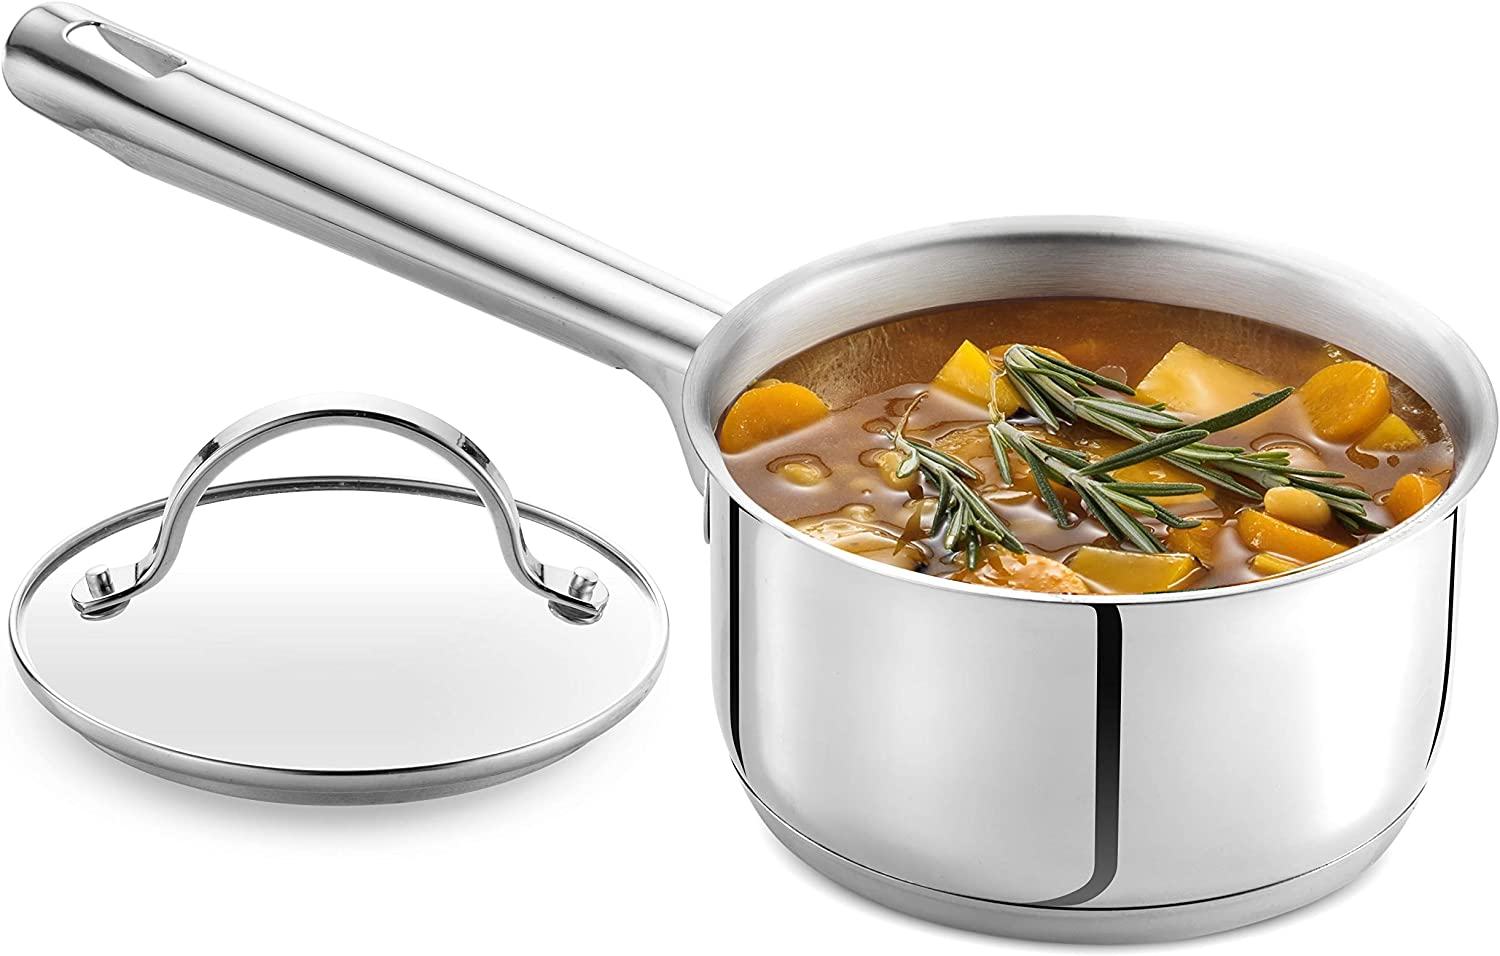 GOURMEX Tango Induction Saucepan | Stainless Steel Pot With Glass Cookware Lid | Interior Measurement Markings | Compatible with All Heat Sources | Dishwasher Oven Safe (1.2L)